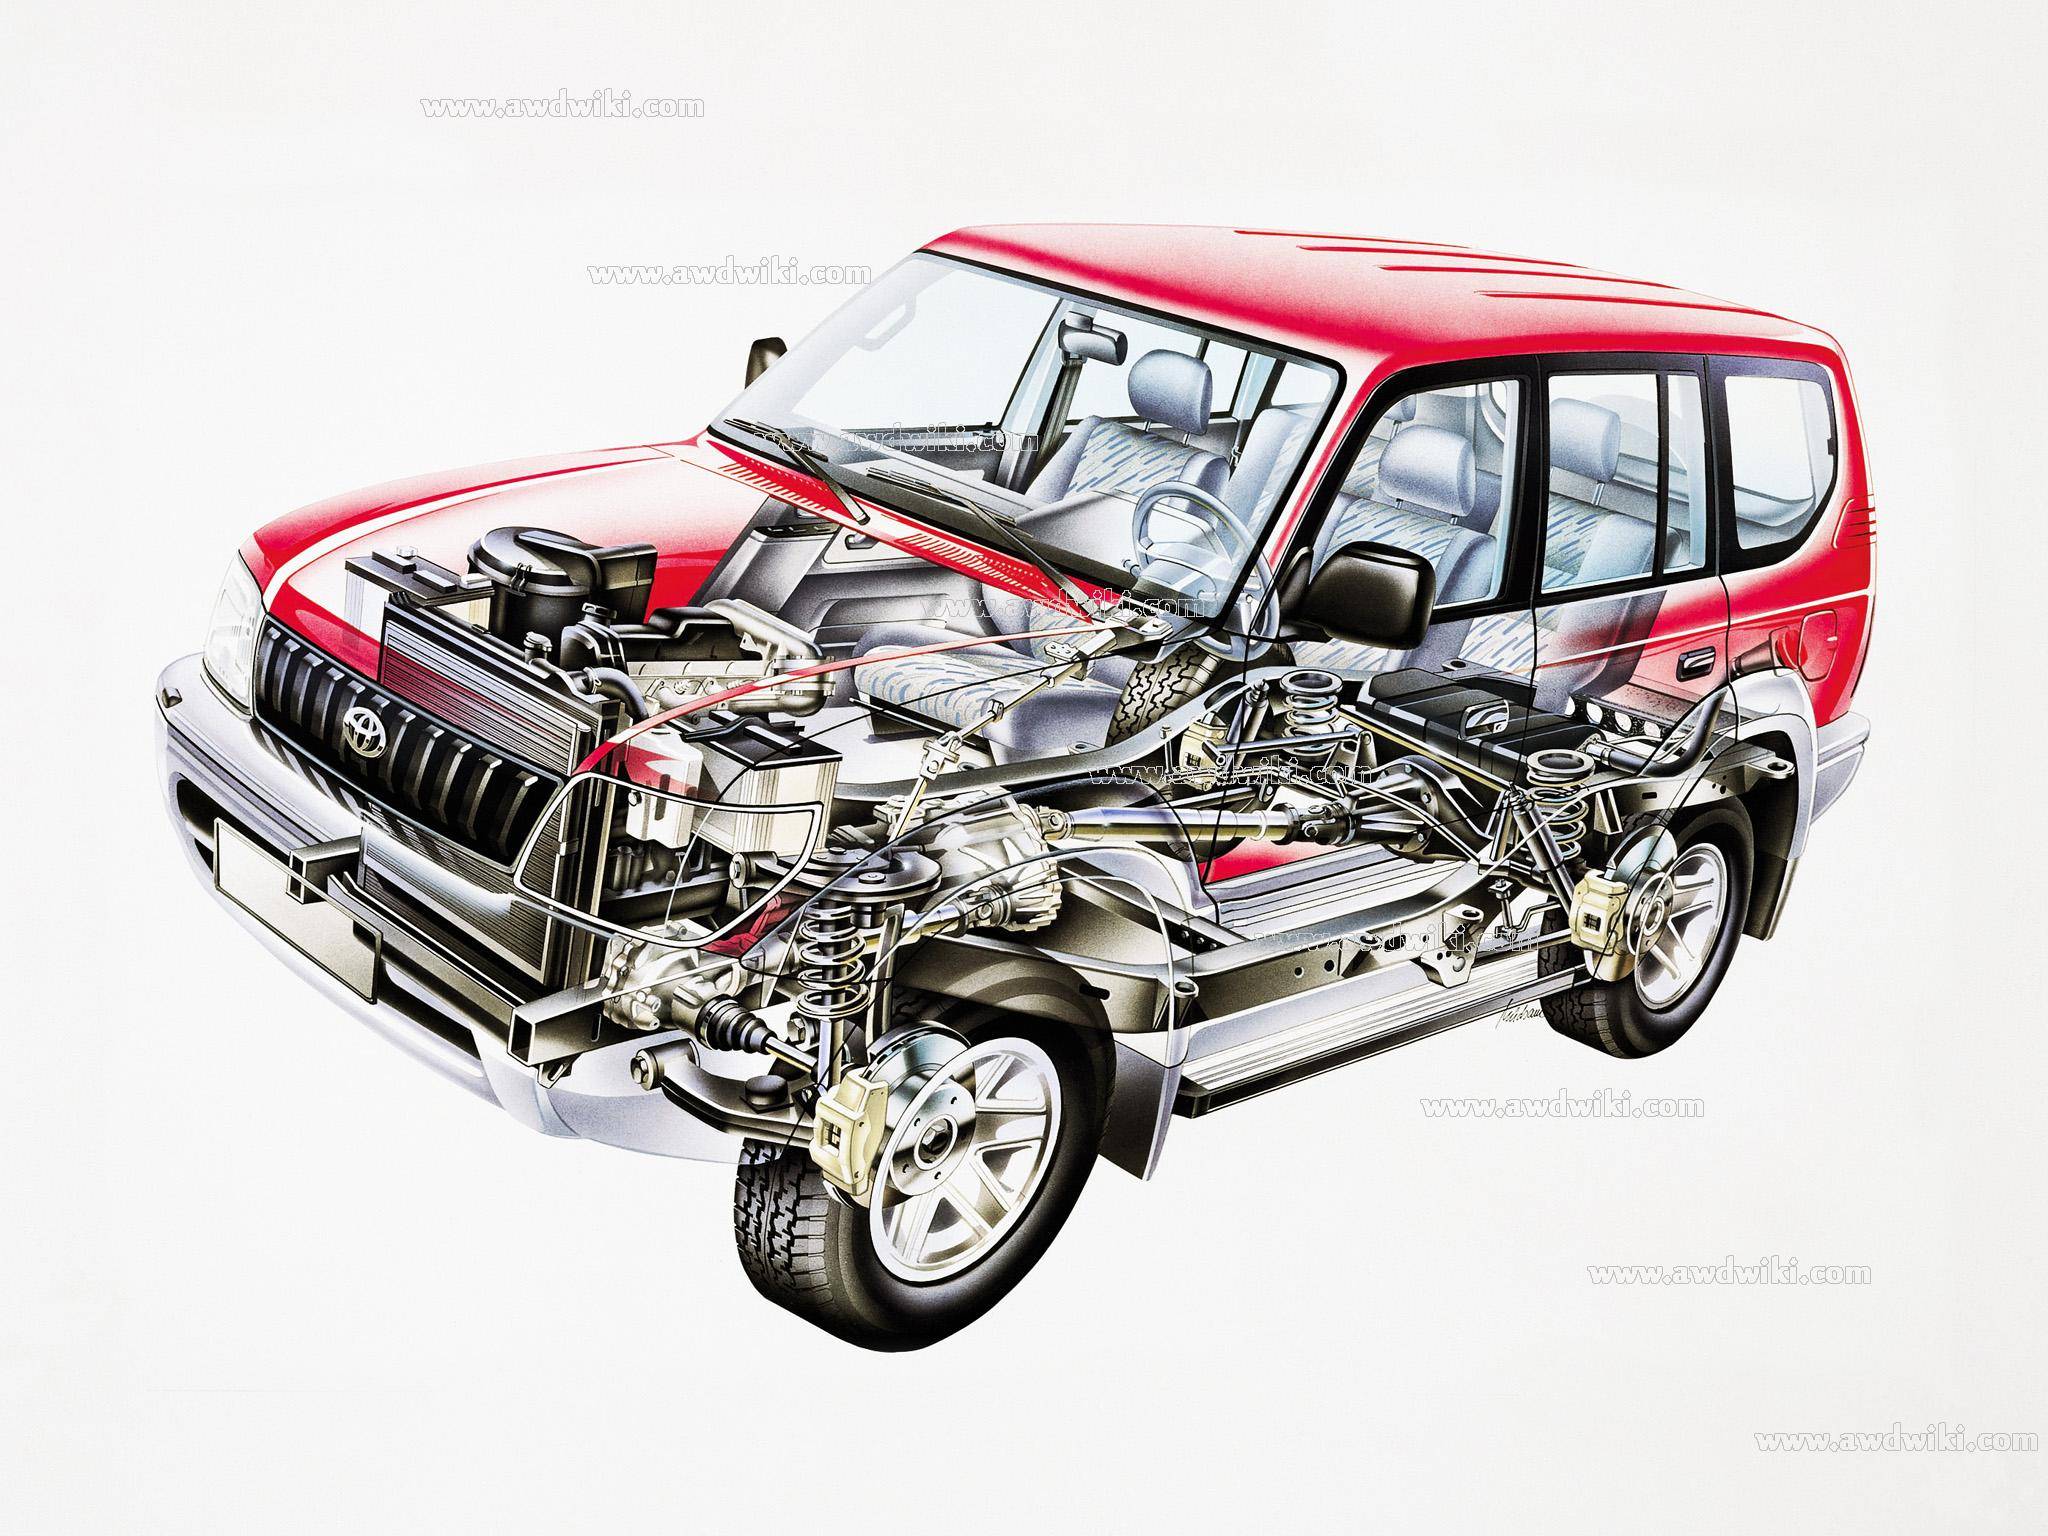 Toyota All Wheel Drive Explained Awd Cars 4x4 Vehicles 4wd 1993 Land Cruiser Engine Diagram 90